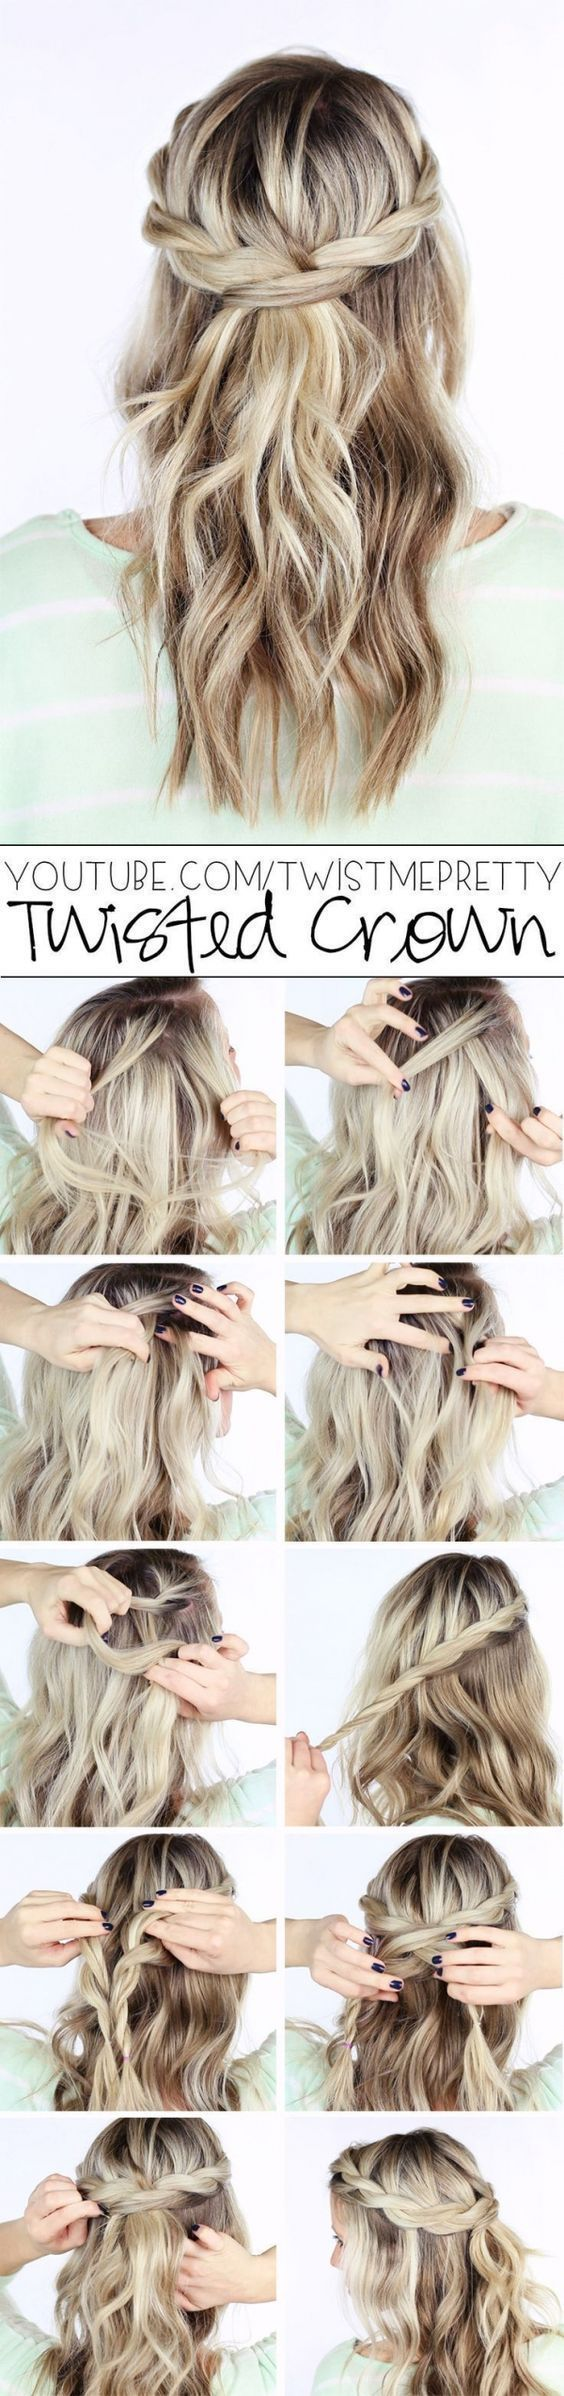 22 popular medium hairstyles for women 2017 shoulder length hair cool and easy diy hairstyles twisted crown braid quick and easy ideas for back to school styles for medium short and long hair fun tips and best step solutioingenieria Image collections